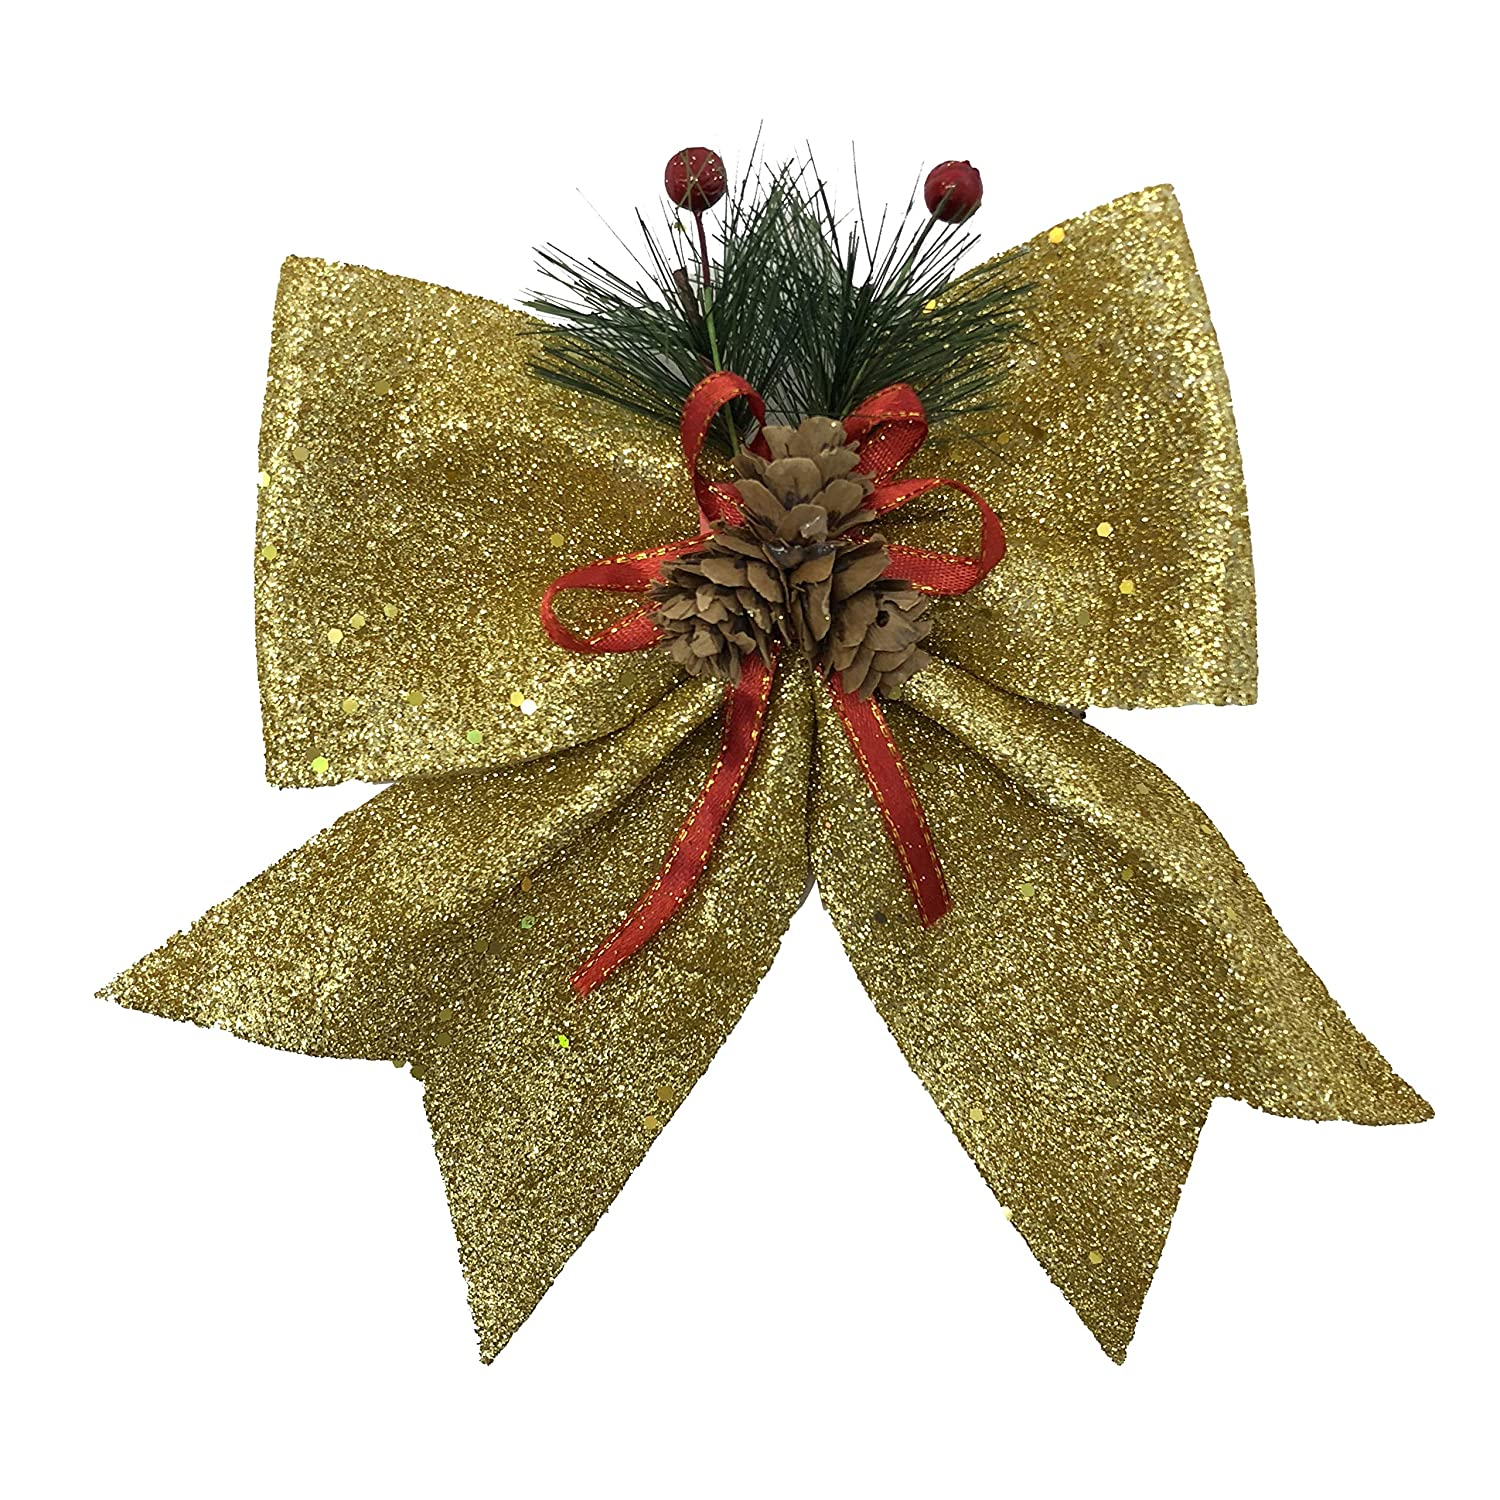 allgala Christmas Decorative Bows for Wreath Garland Treetopper Christmas Tree (9 Medium Gold, 4 PK)